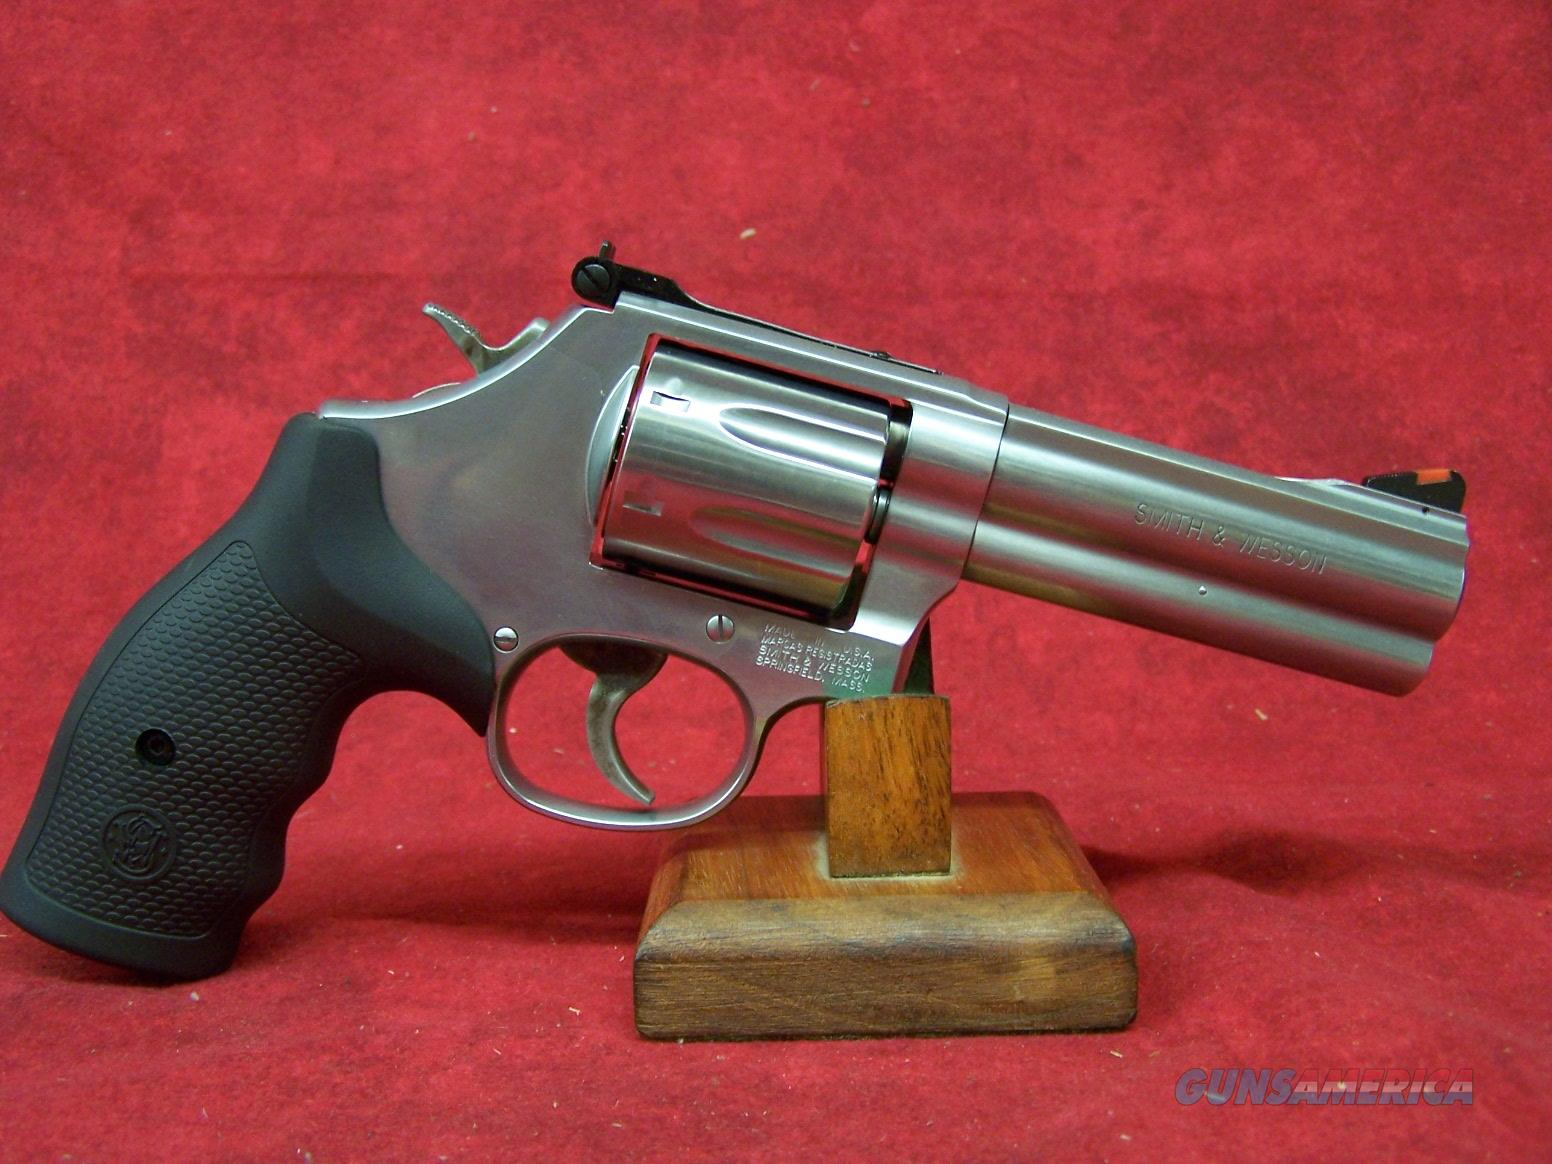 Smith & Wesson Model 686 Plus .357 Magnum/.38 Smith & Wesson Special +P 4 Inch Barrel (164194)  Guns > Pistols > Smith & Wesson Revolvers > Med. Frame ( K/L )